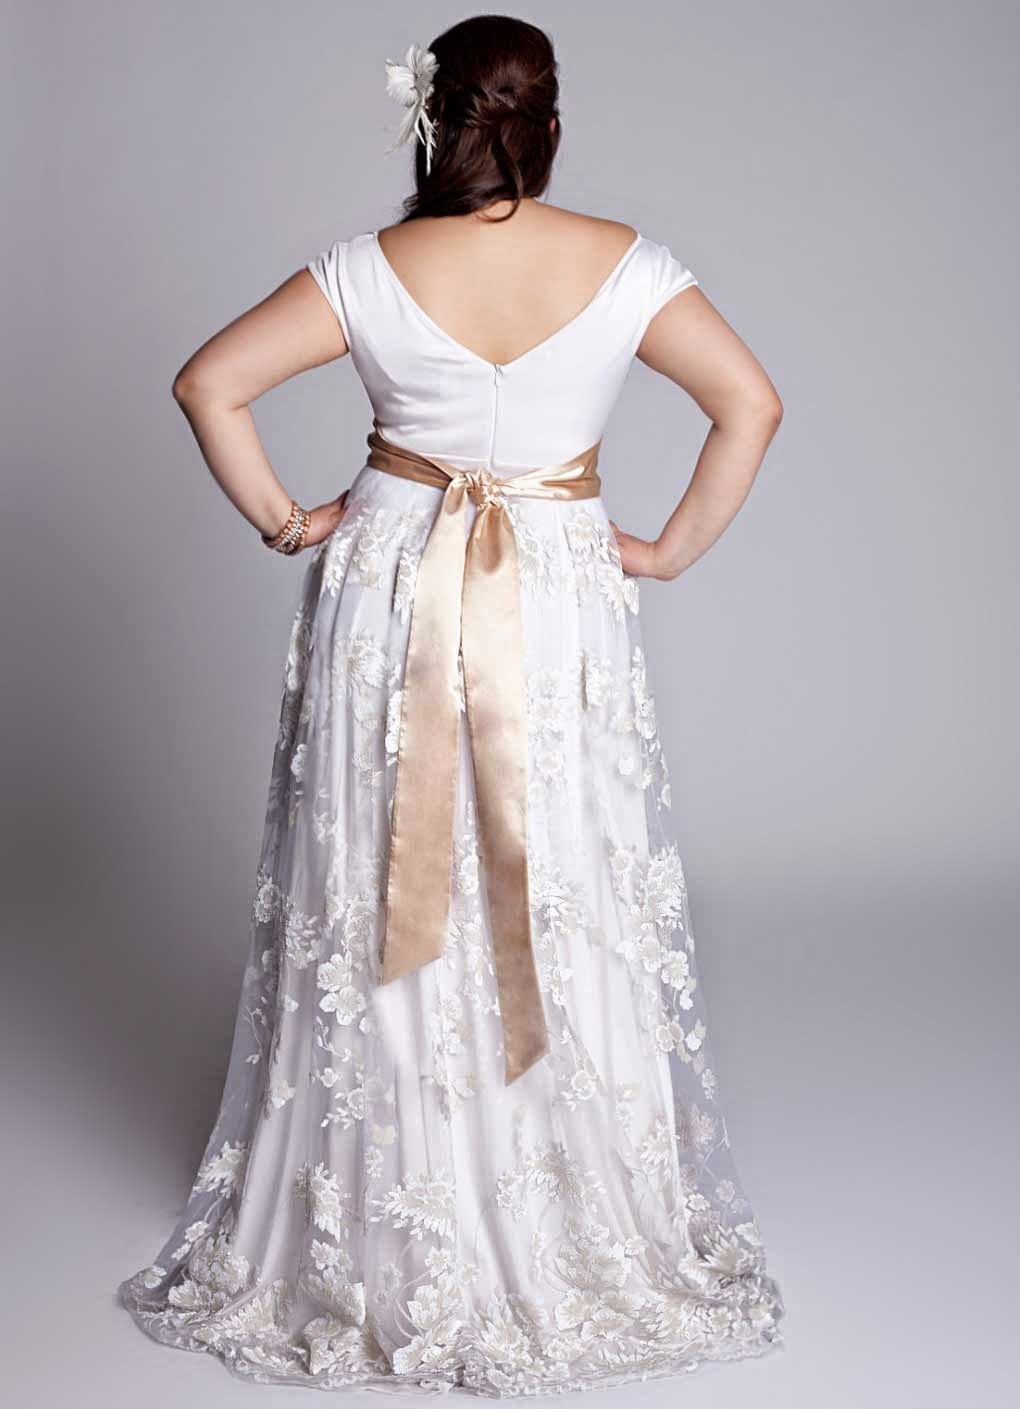 Vintage wedding dress plus size ideas photos hd for Vintage wedding dresses plus size